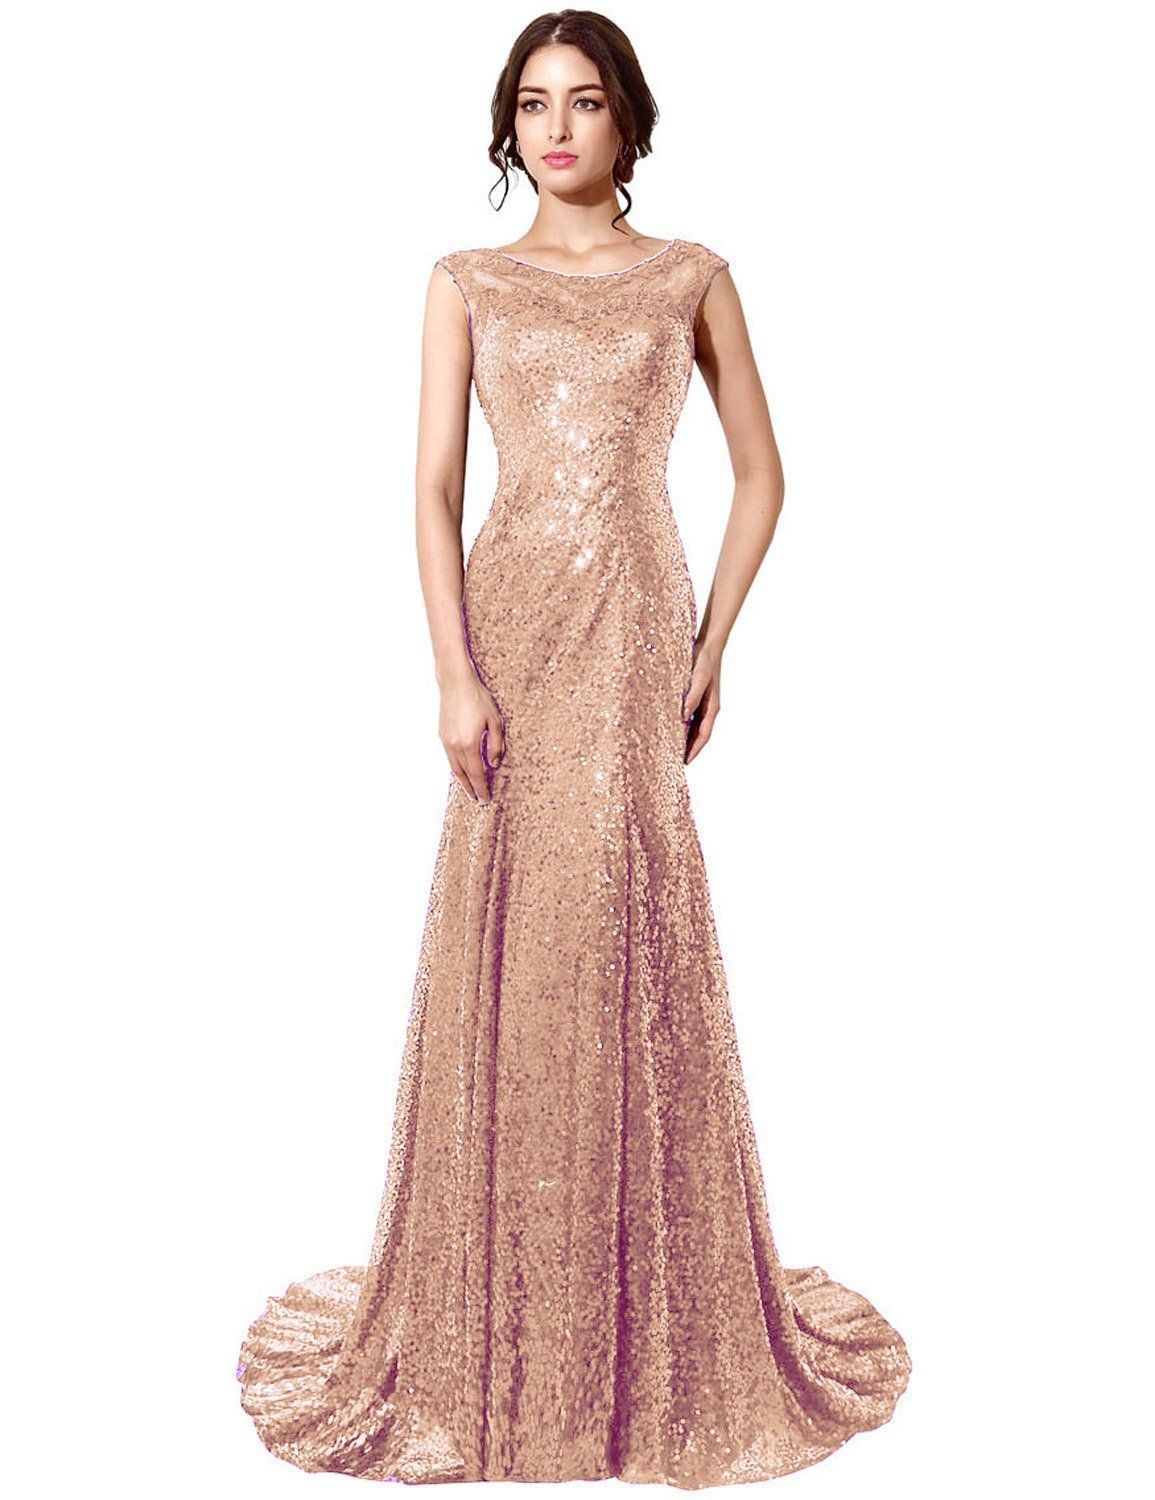 Belle house rose gold sequins sheer neck prom dress long mermaid